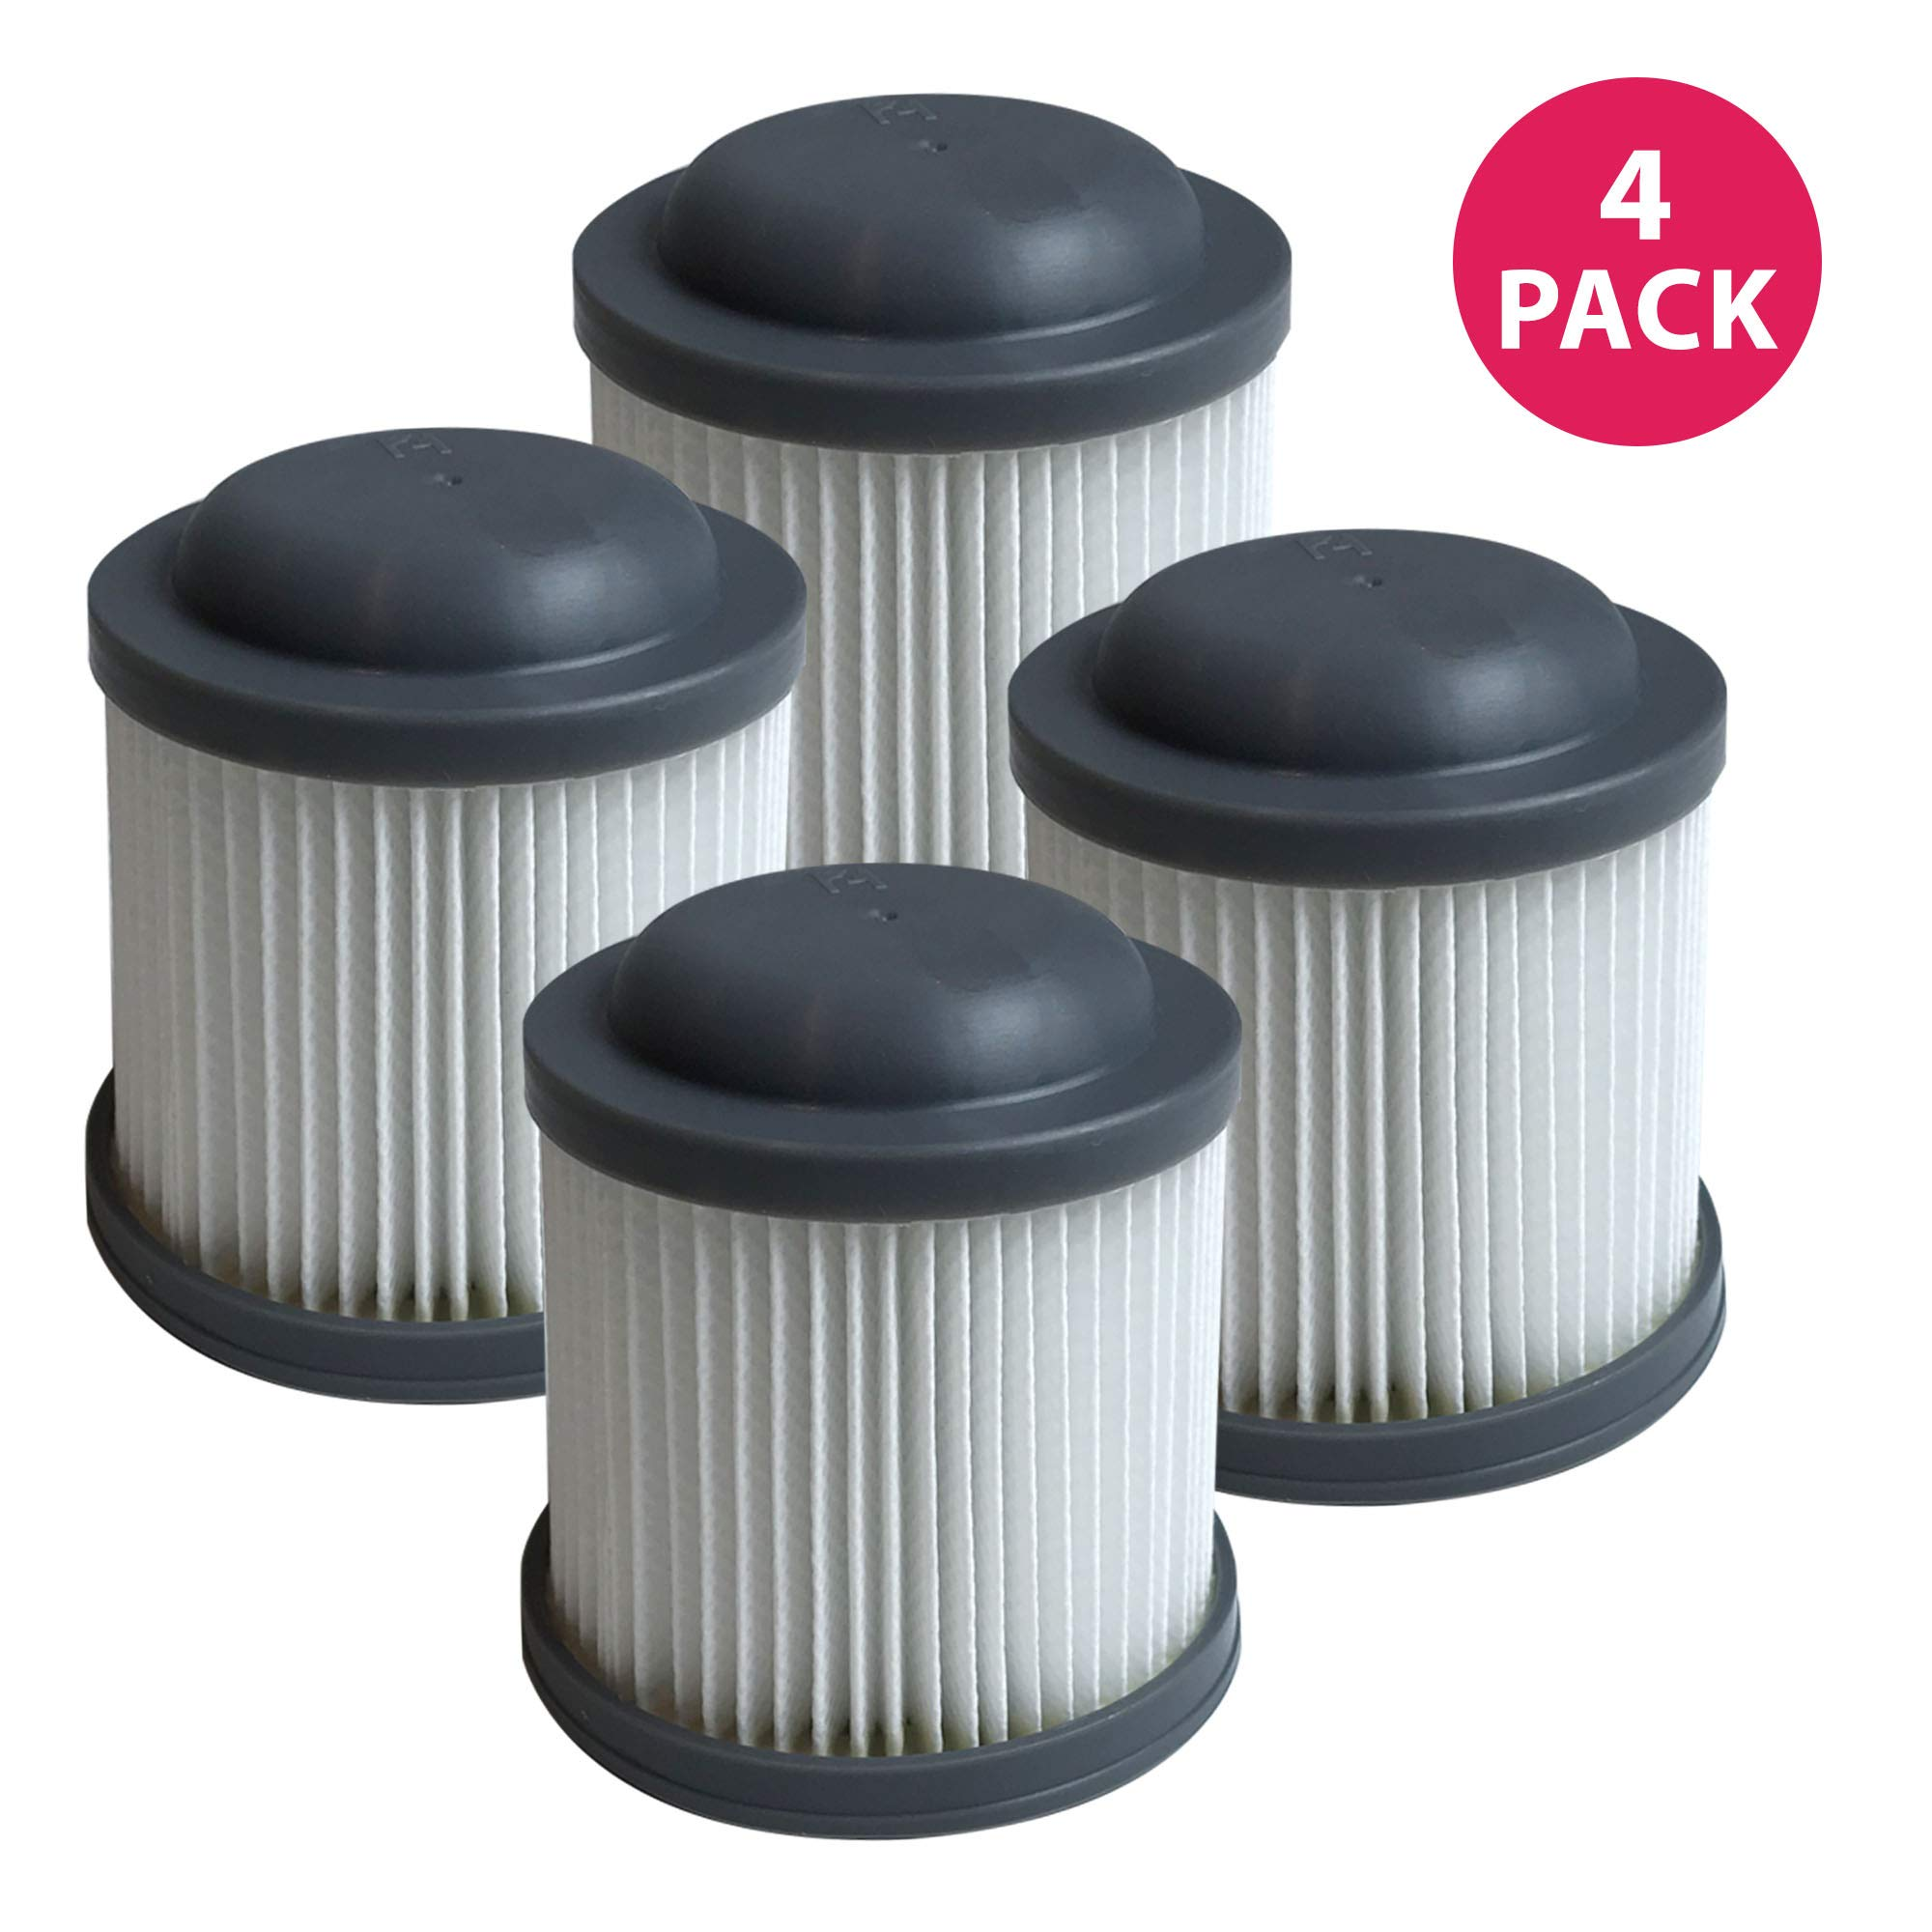 Think Crucial Replacement Vacuum Filters Compatible with Black and Decker Vacuums, Washable and Reusable Filter Part - Parts VF100, VF100H - Fits Model PVF110, PHV1210 and PHV1810 Bulk (4 Pack)